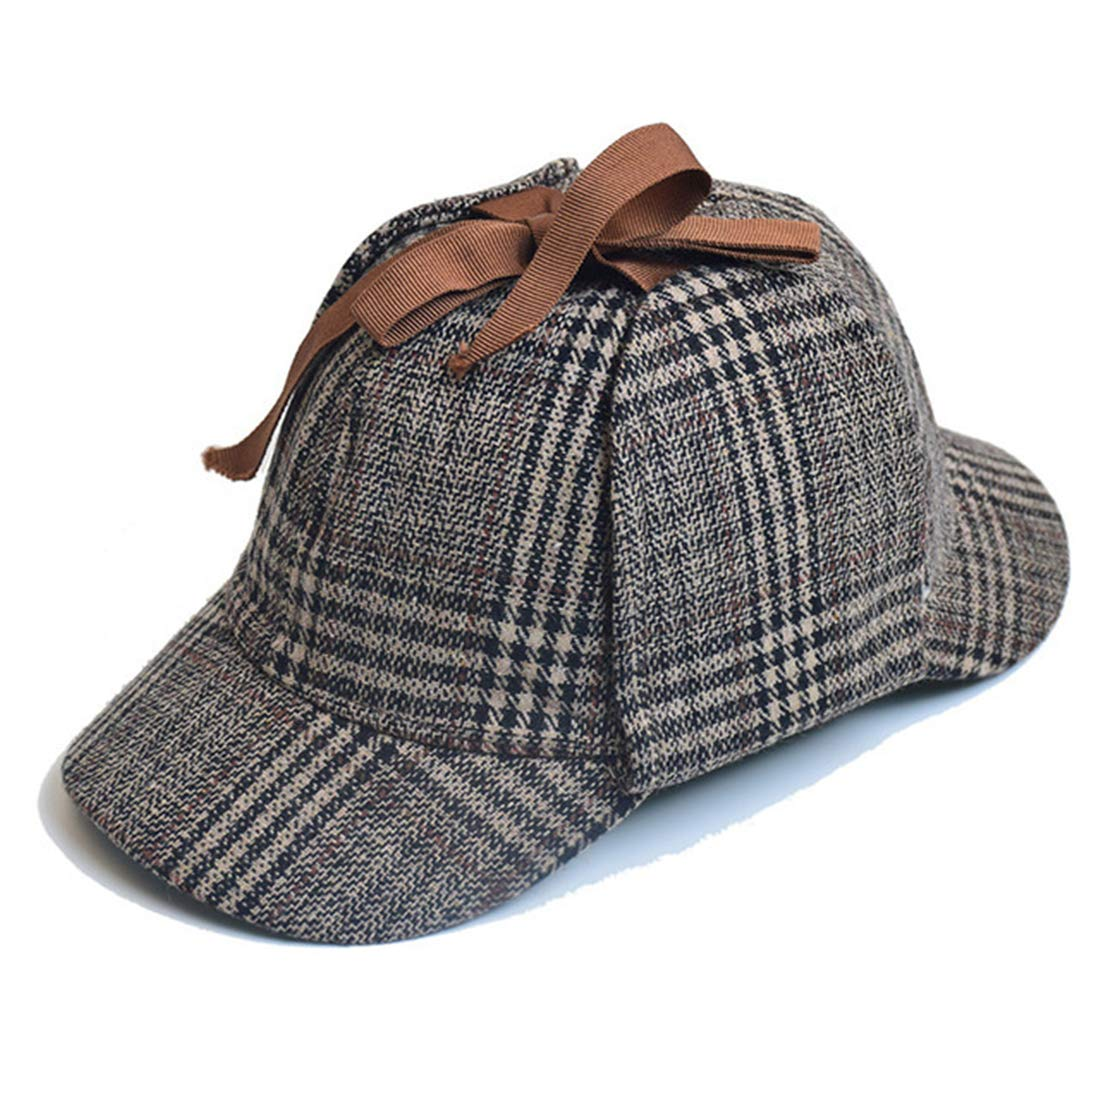 Unisex Sherlock Holmes Hat Detective Hat Deerstalker Hat for Adults & Kids